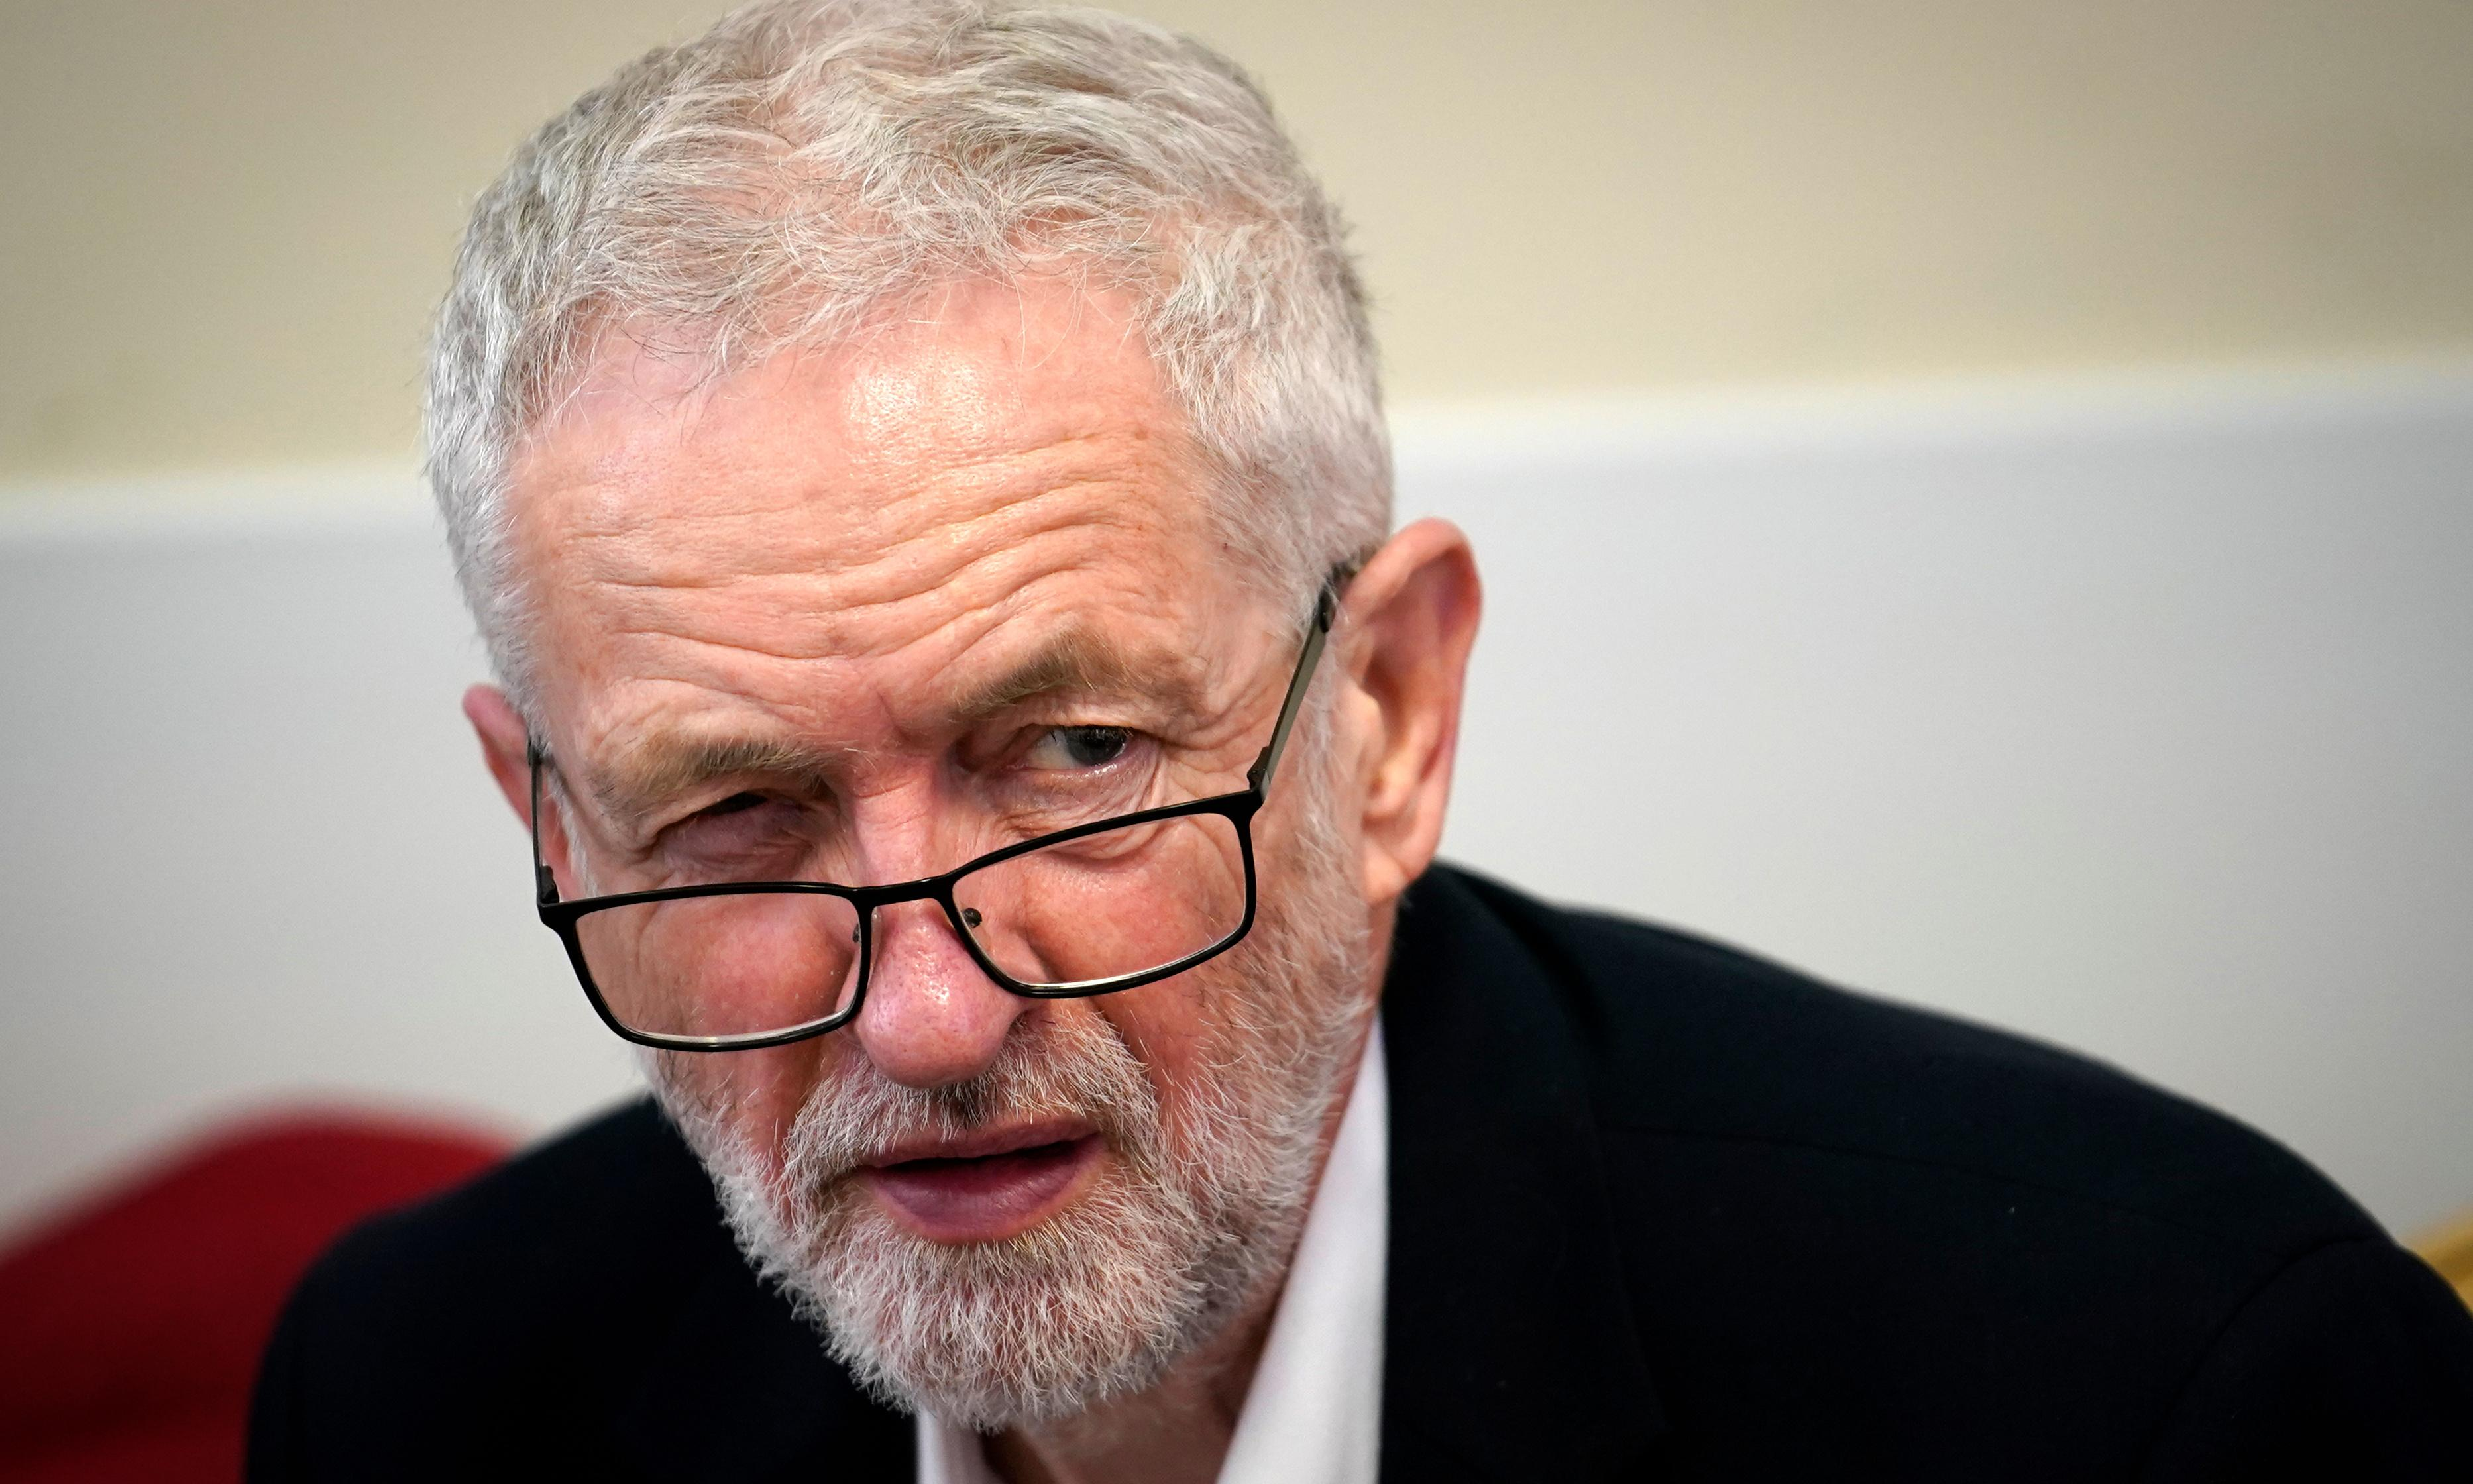 Labour MPs to urge Jeremy Corbyn not to 'torpedo' Brexit deal